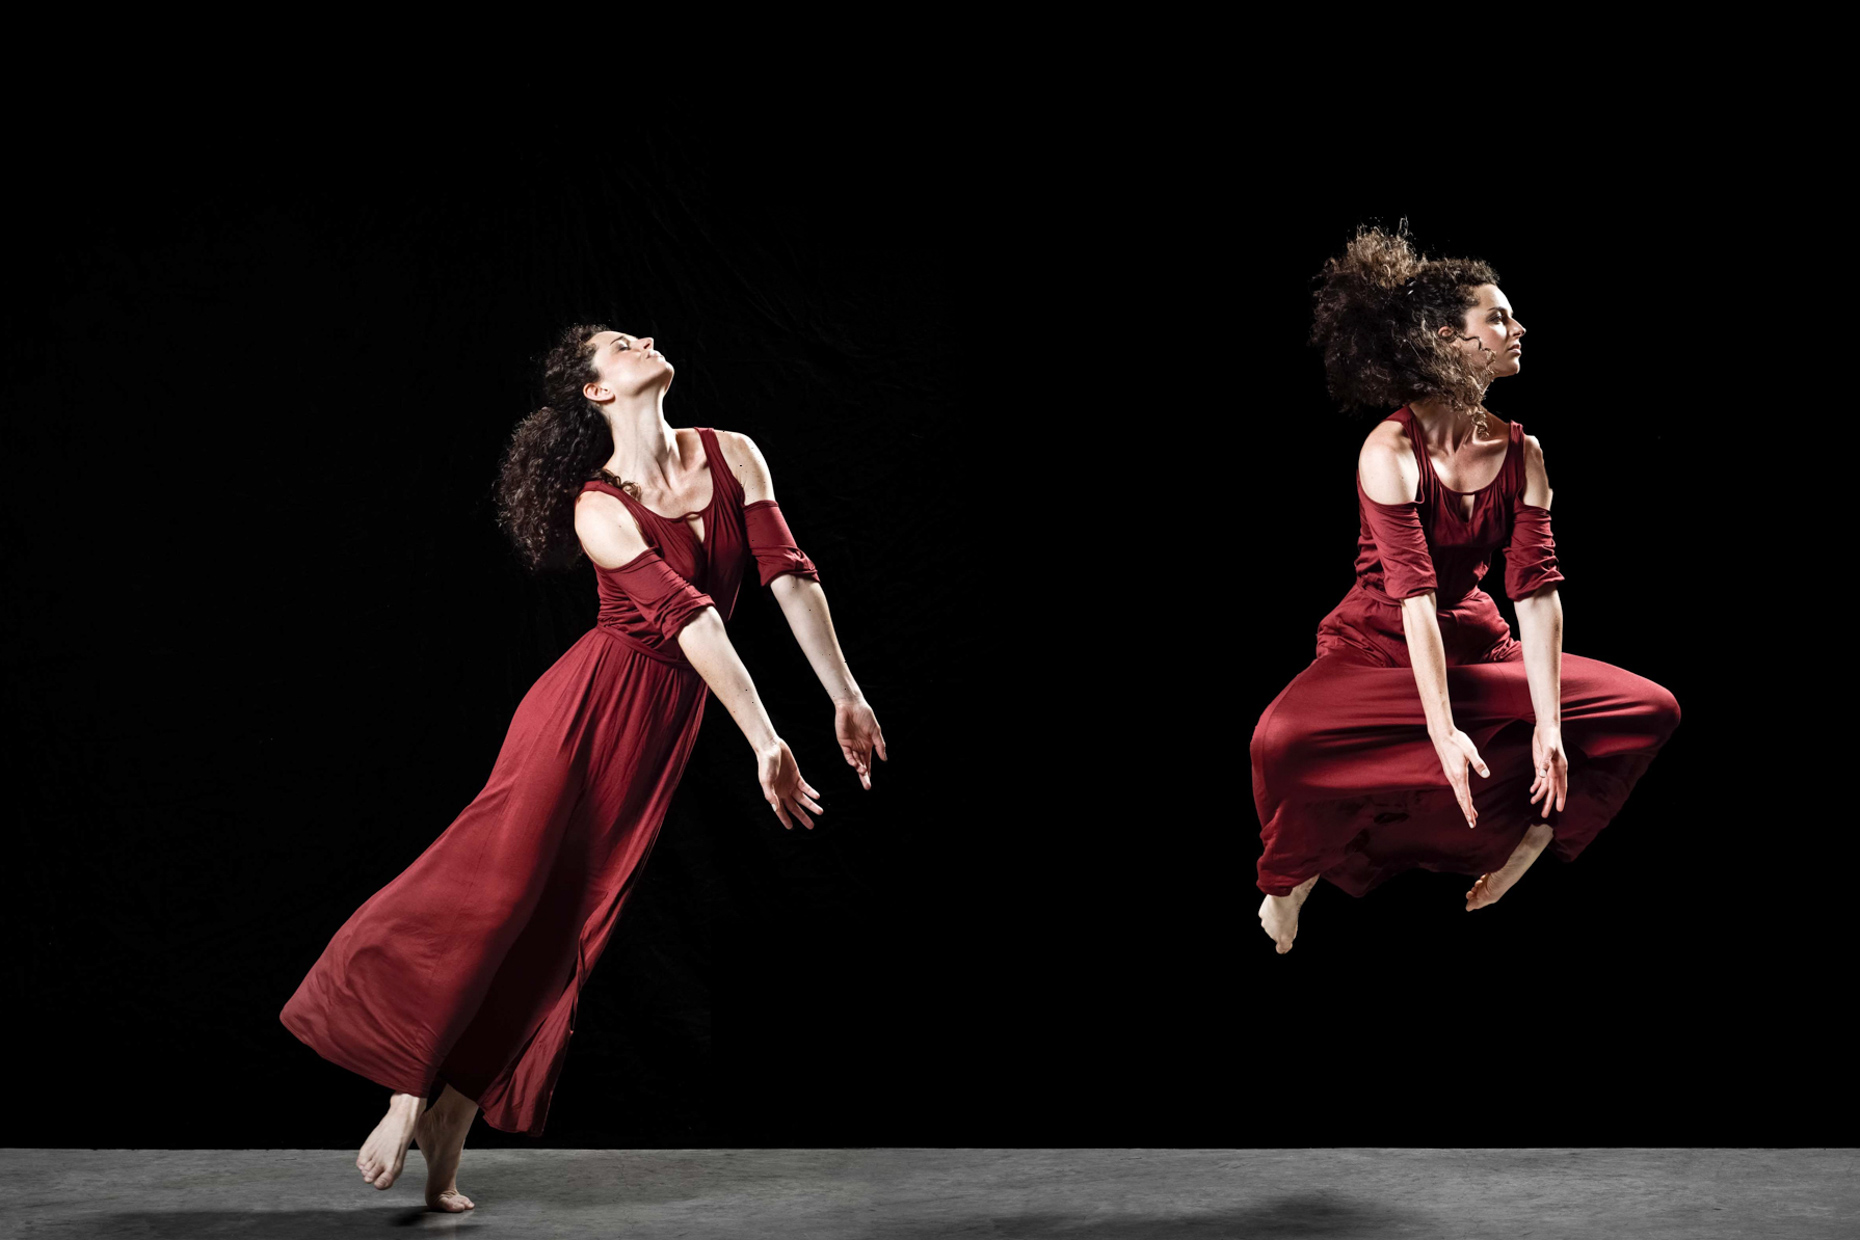 Phylactere_Contemporary Dance©BalfourPhoto